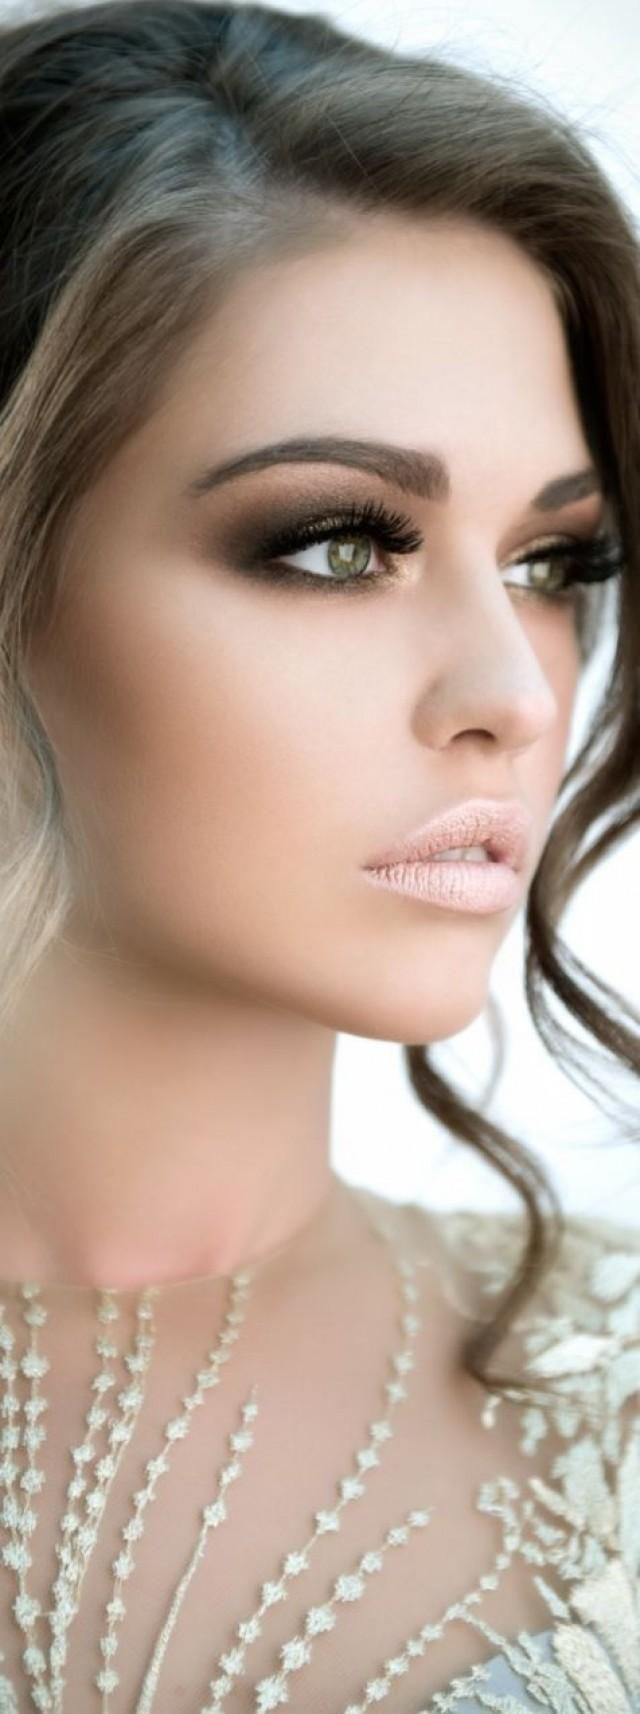 Wedding Make-up, Glam Make-up, bronze smokey eye, Gorgeous makeup for a dream wedding day